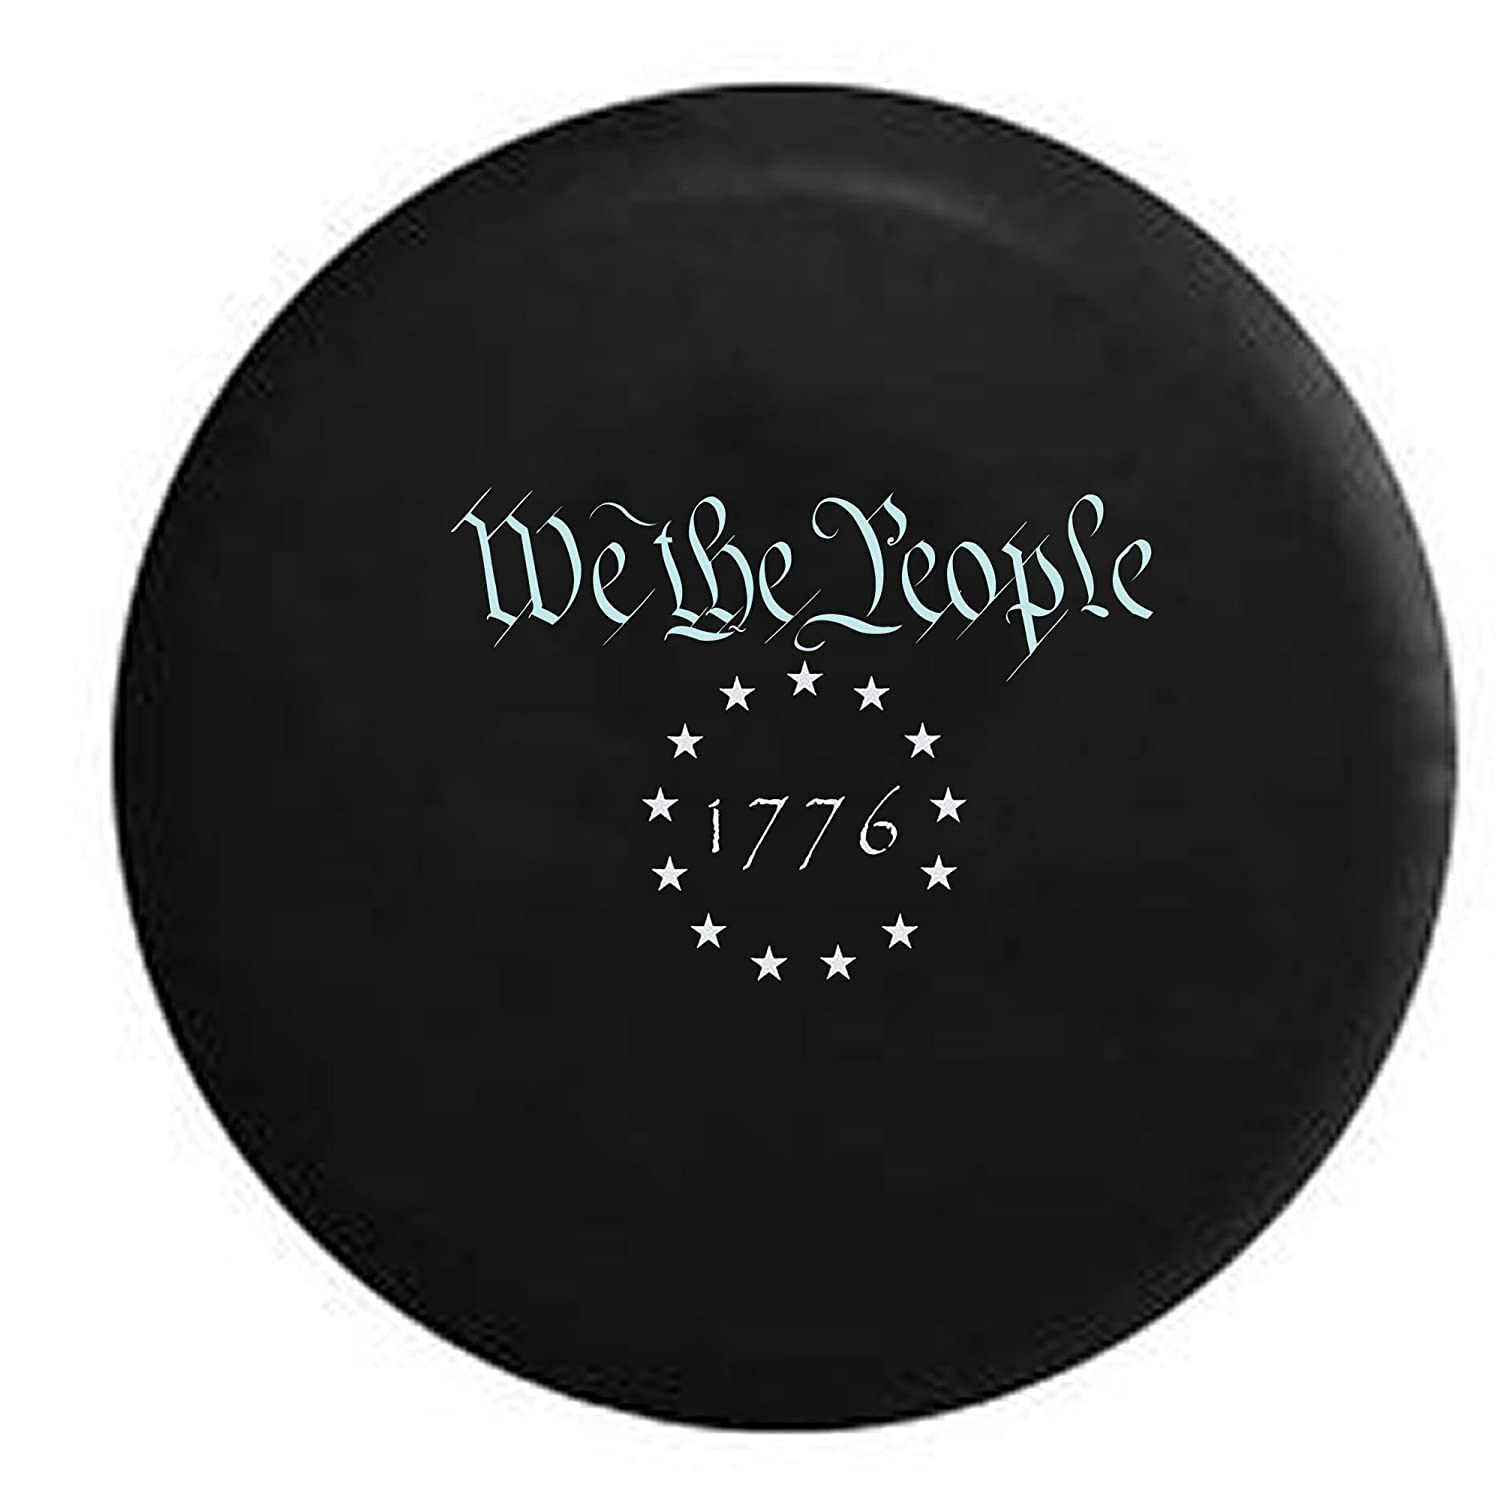 We The People 1776 US Constitution Freedom Rights Spare Tire Cover OEM Vinyl Black 30-31 in American Unlimited Gear